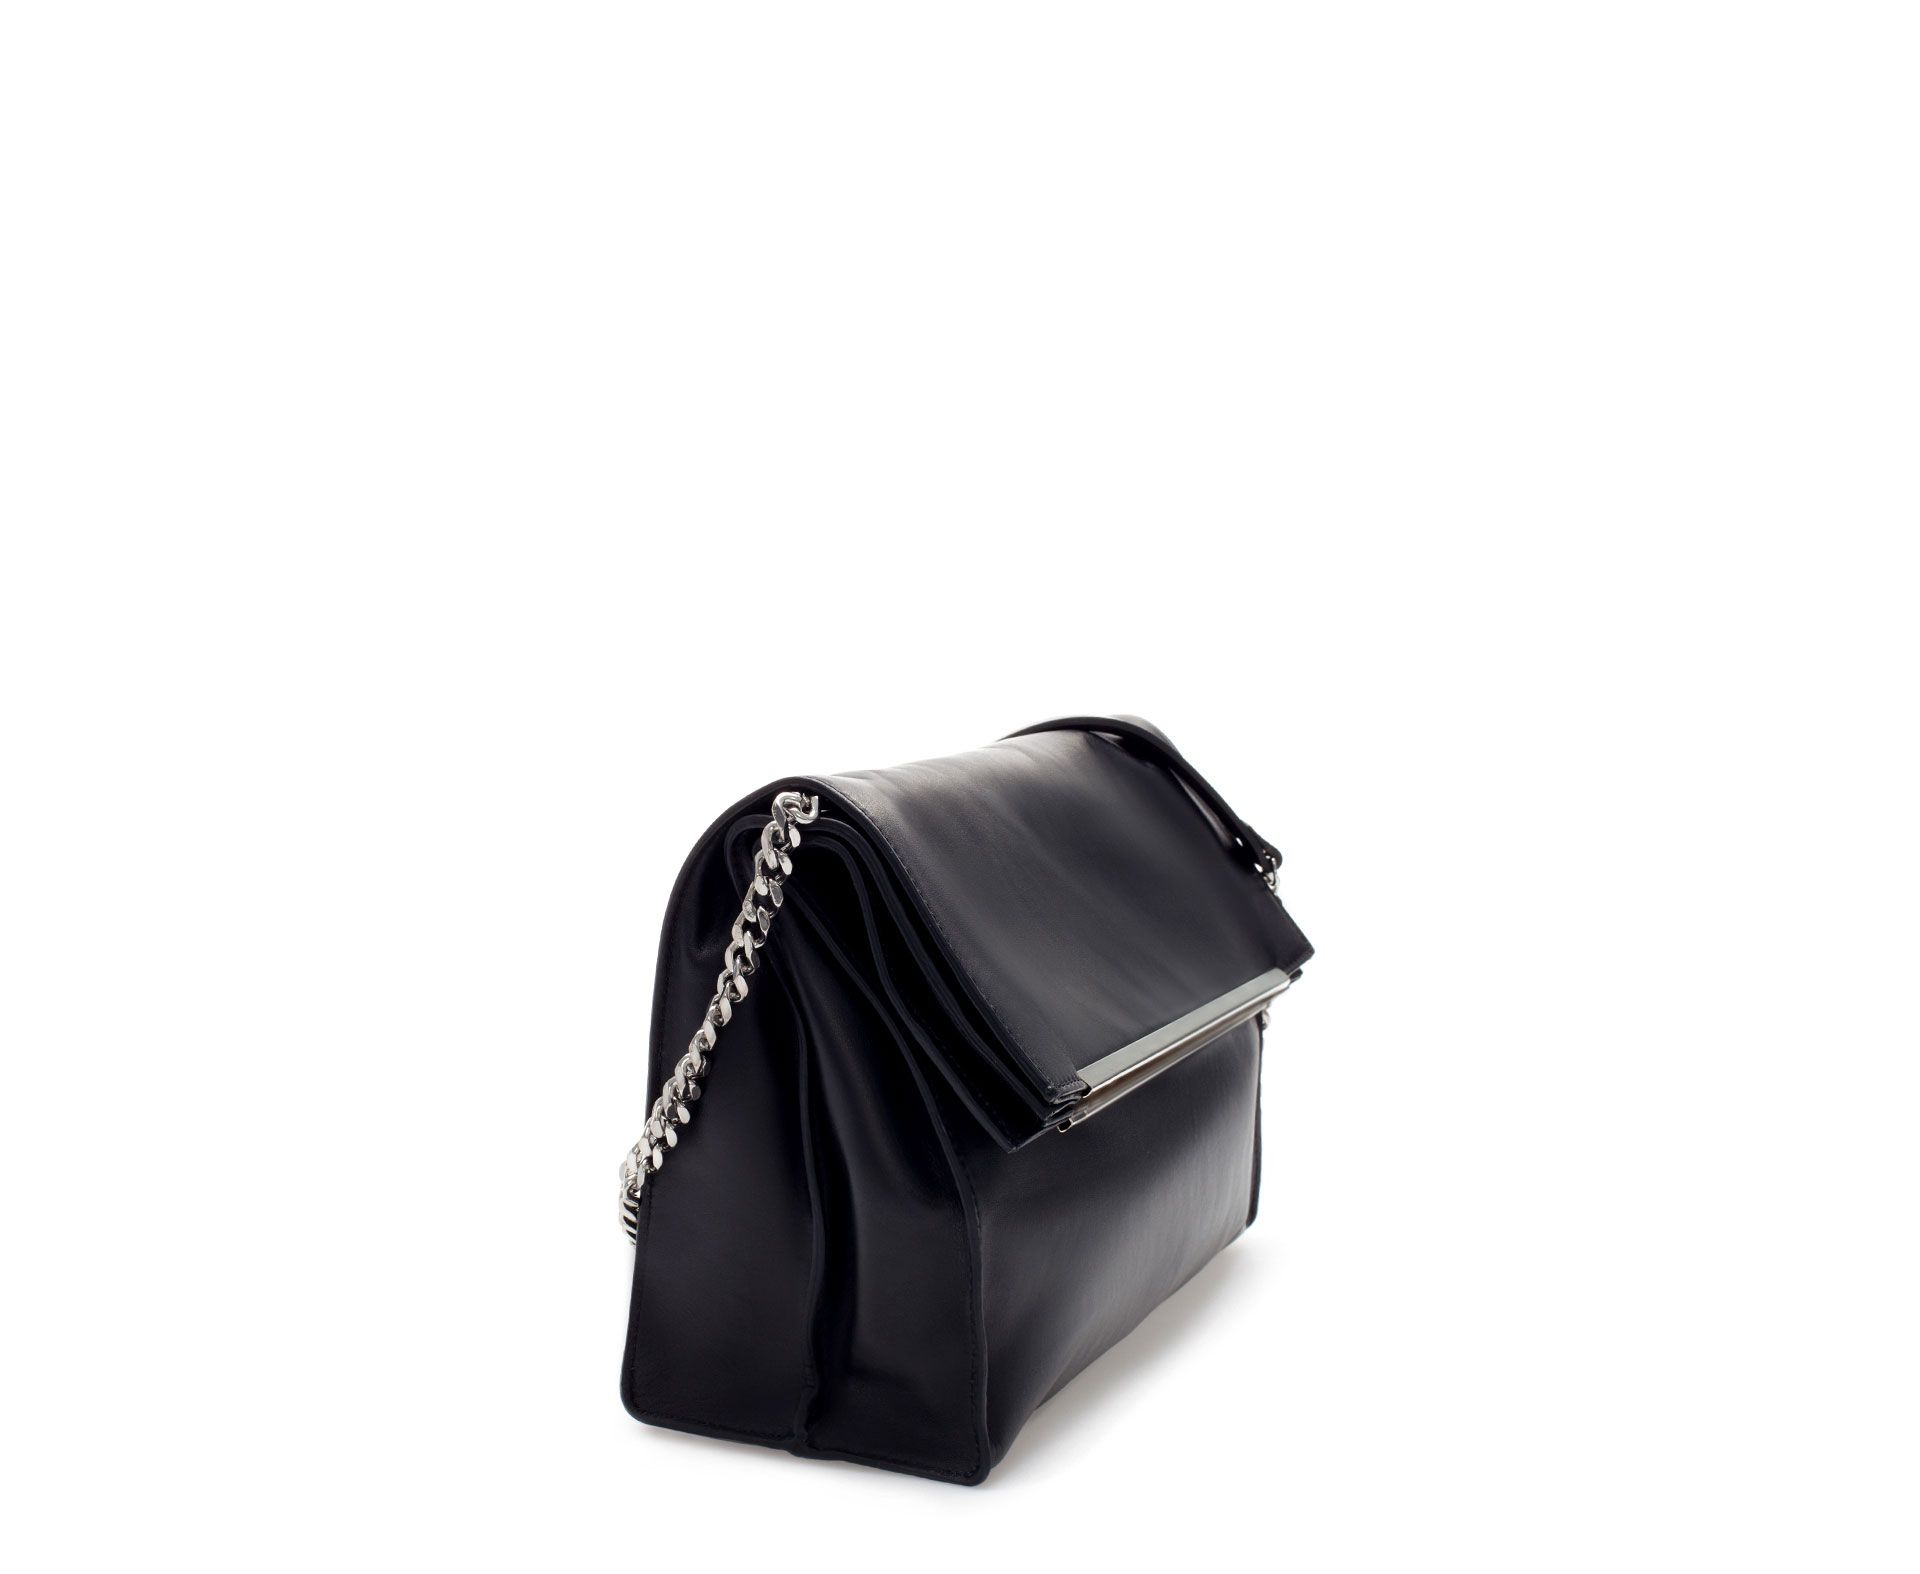 Zara New This Week Leather City Bag With Metal Tab